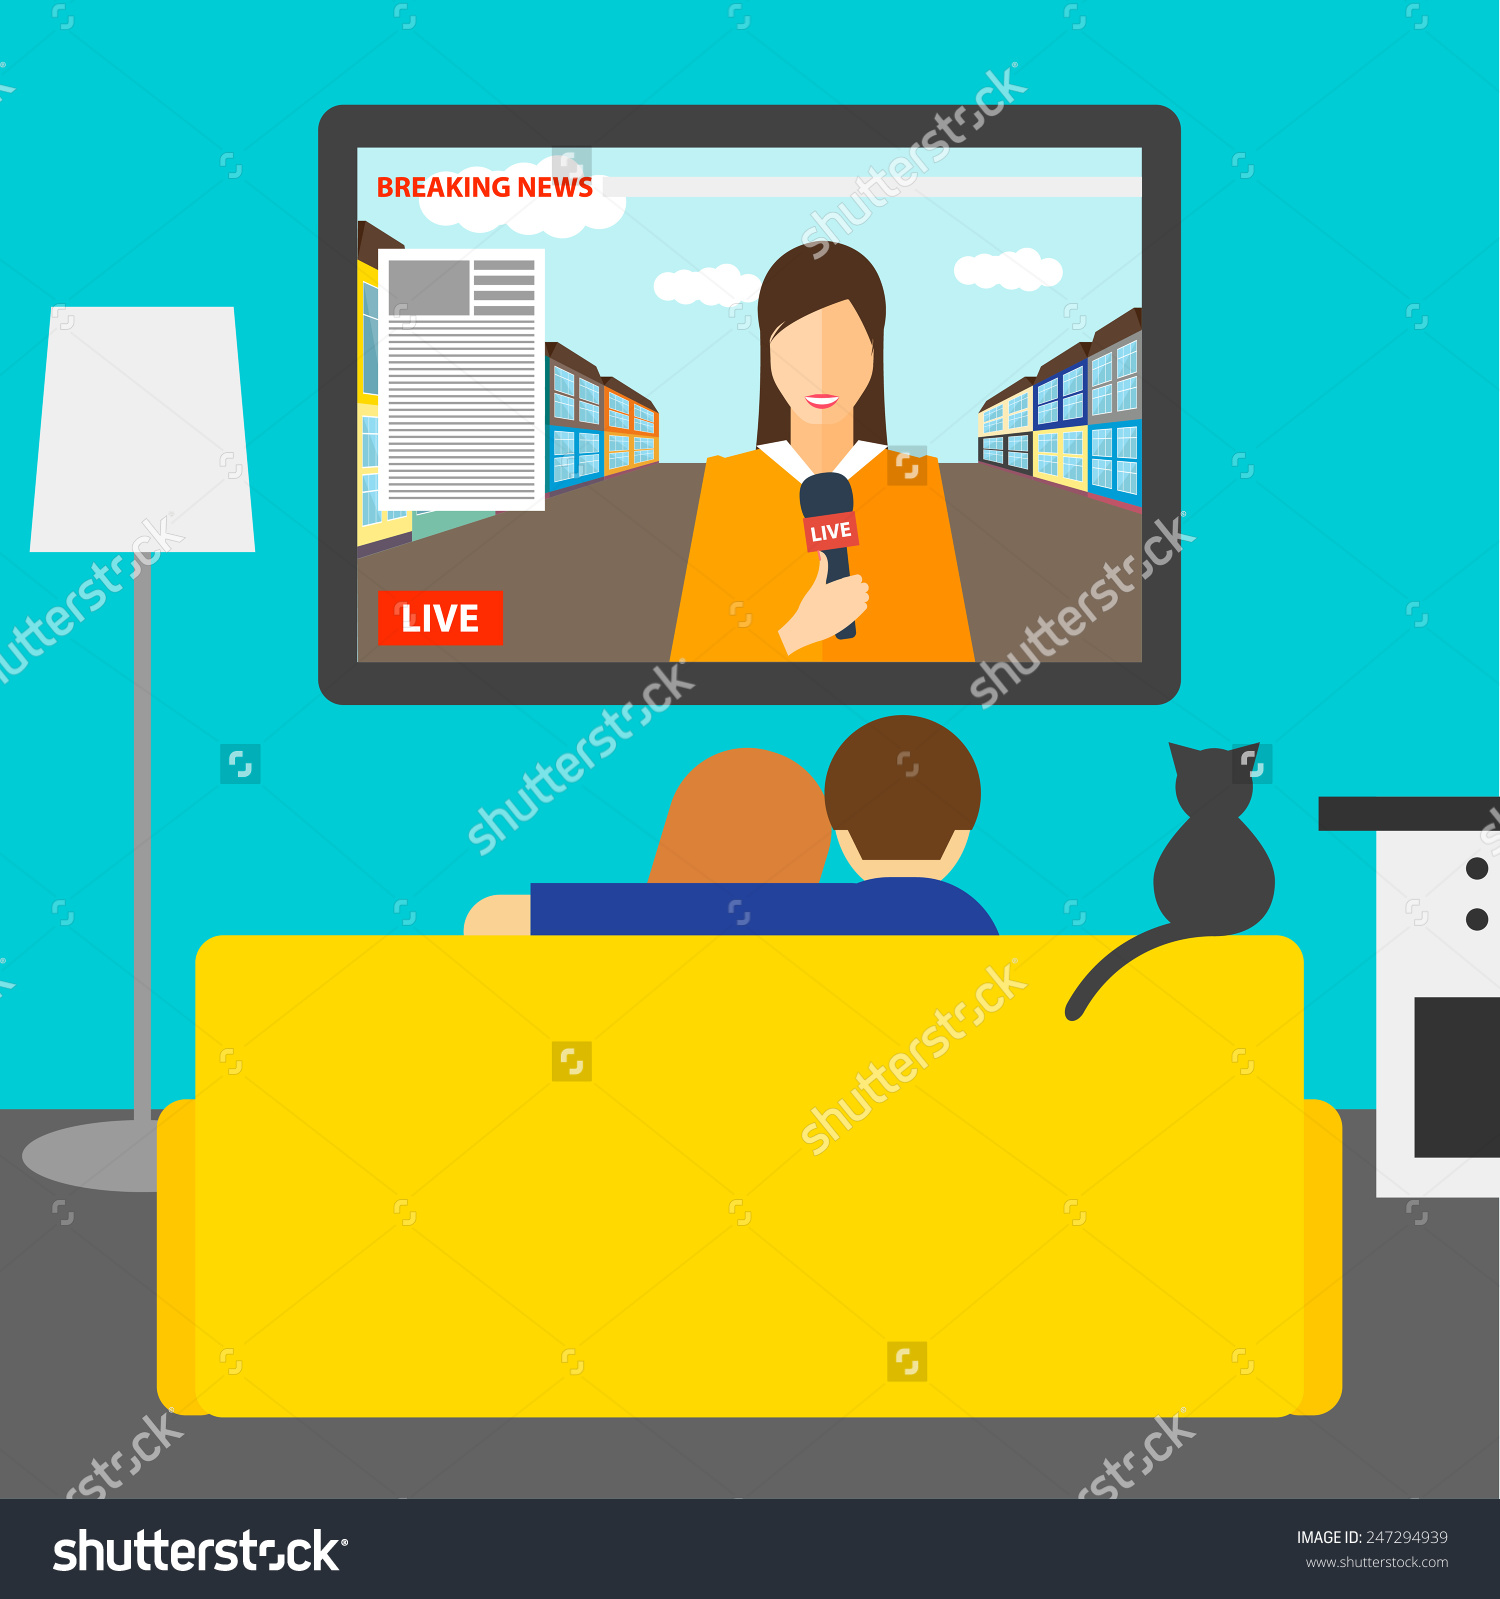 Watch clipart the news Clipart news the clipart Watching